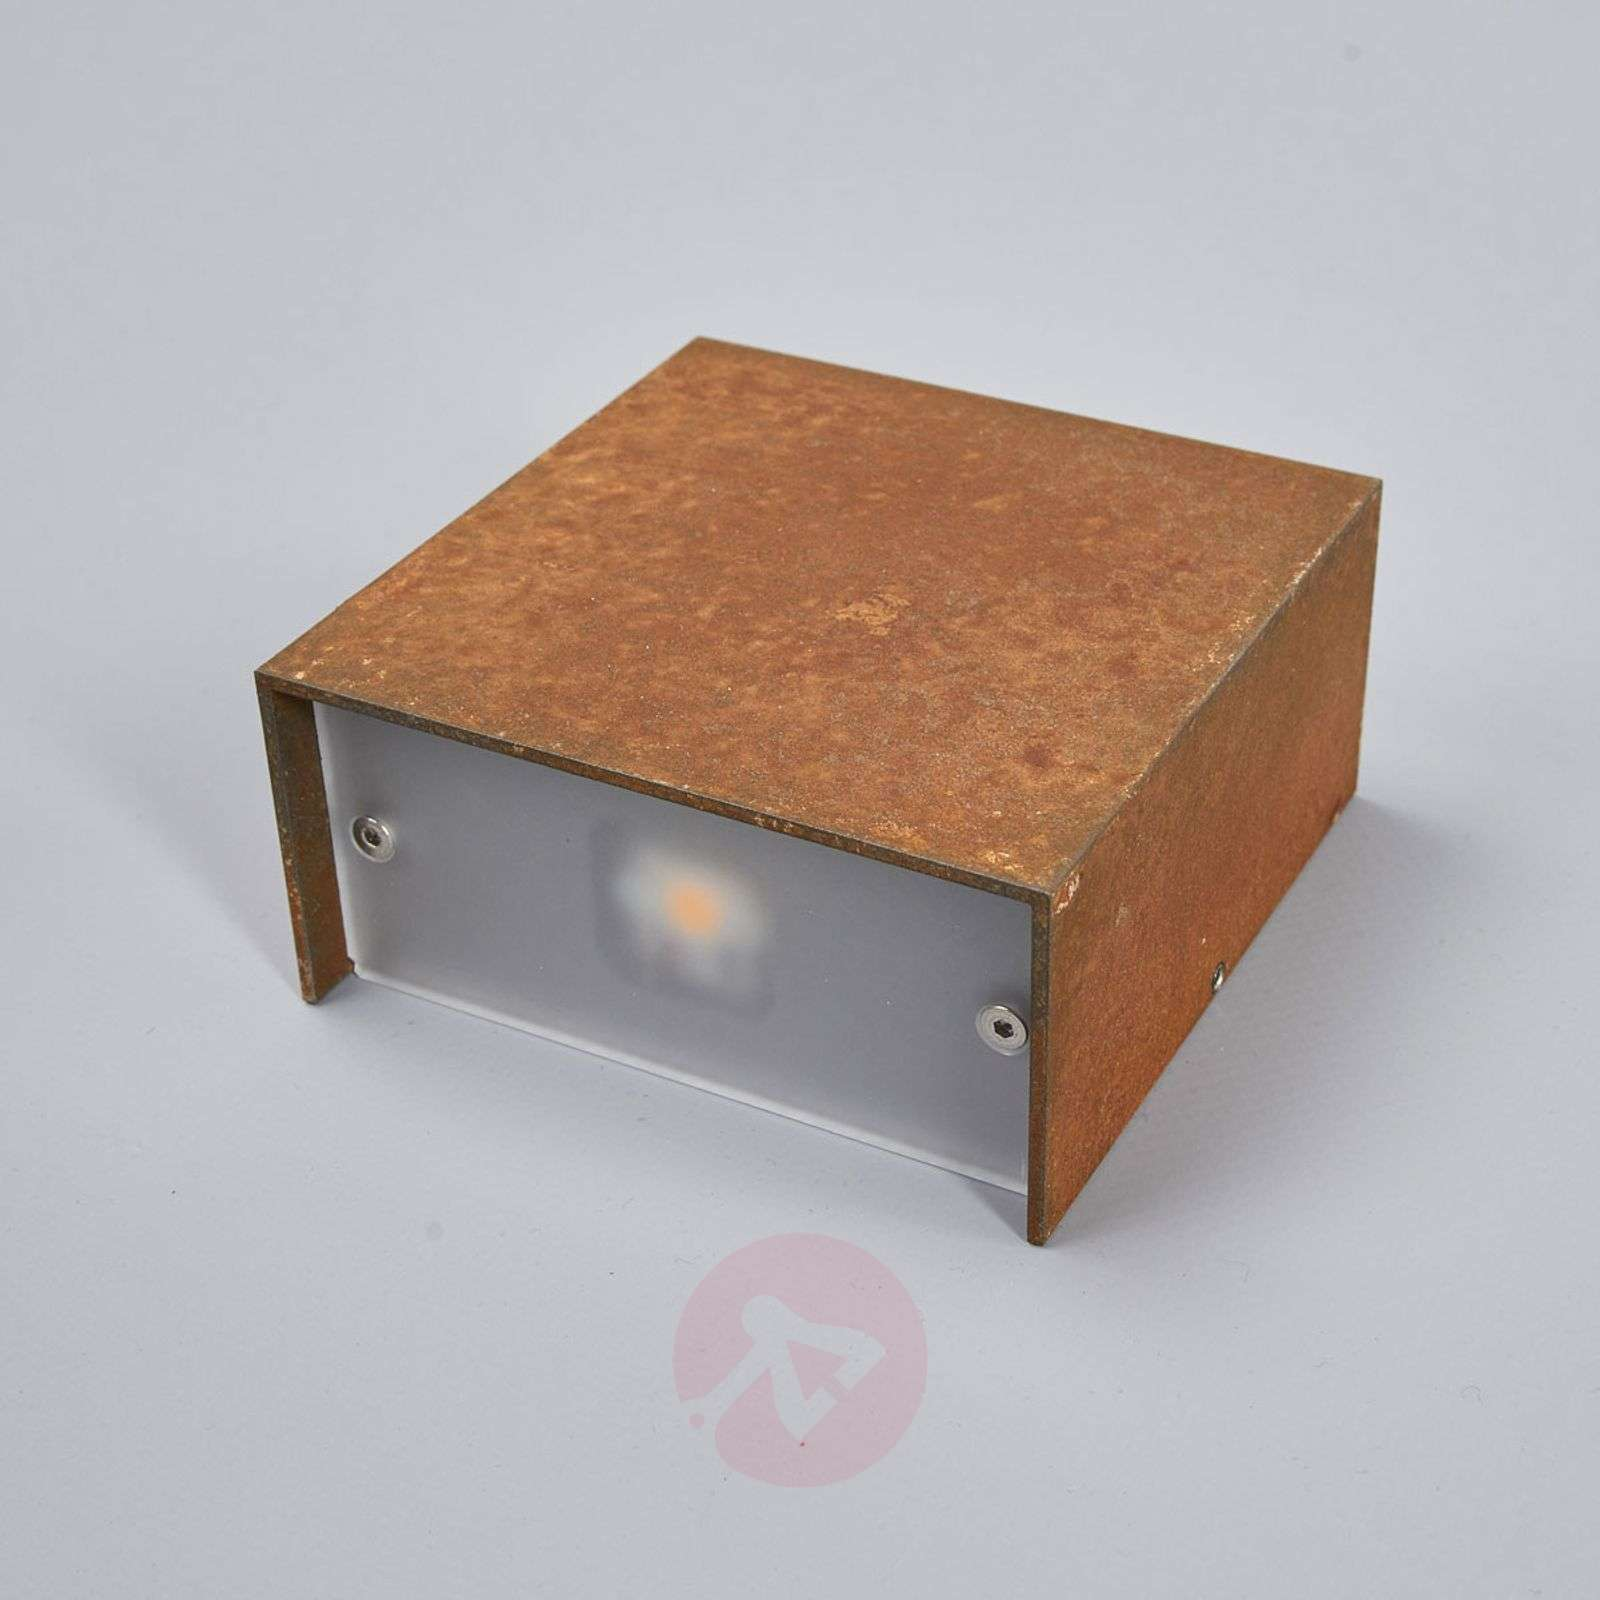 Rust-coloured LED wall light Mira German-made-6722434-01